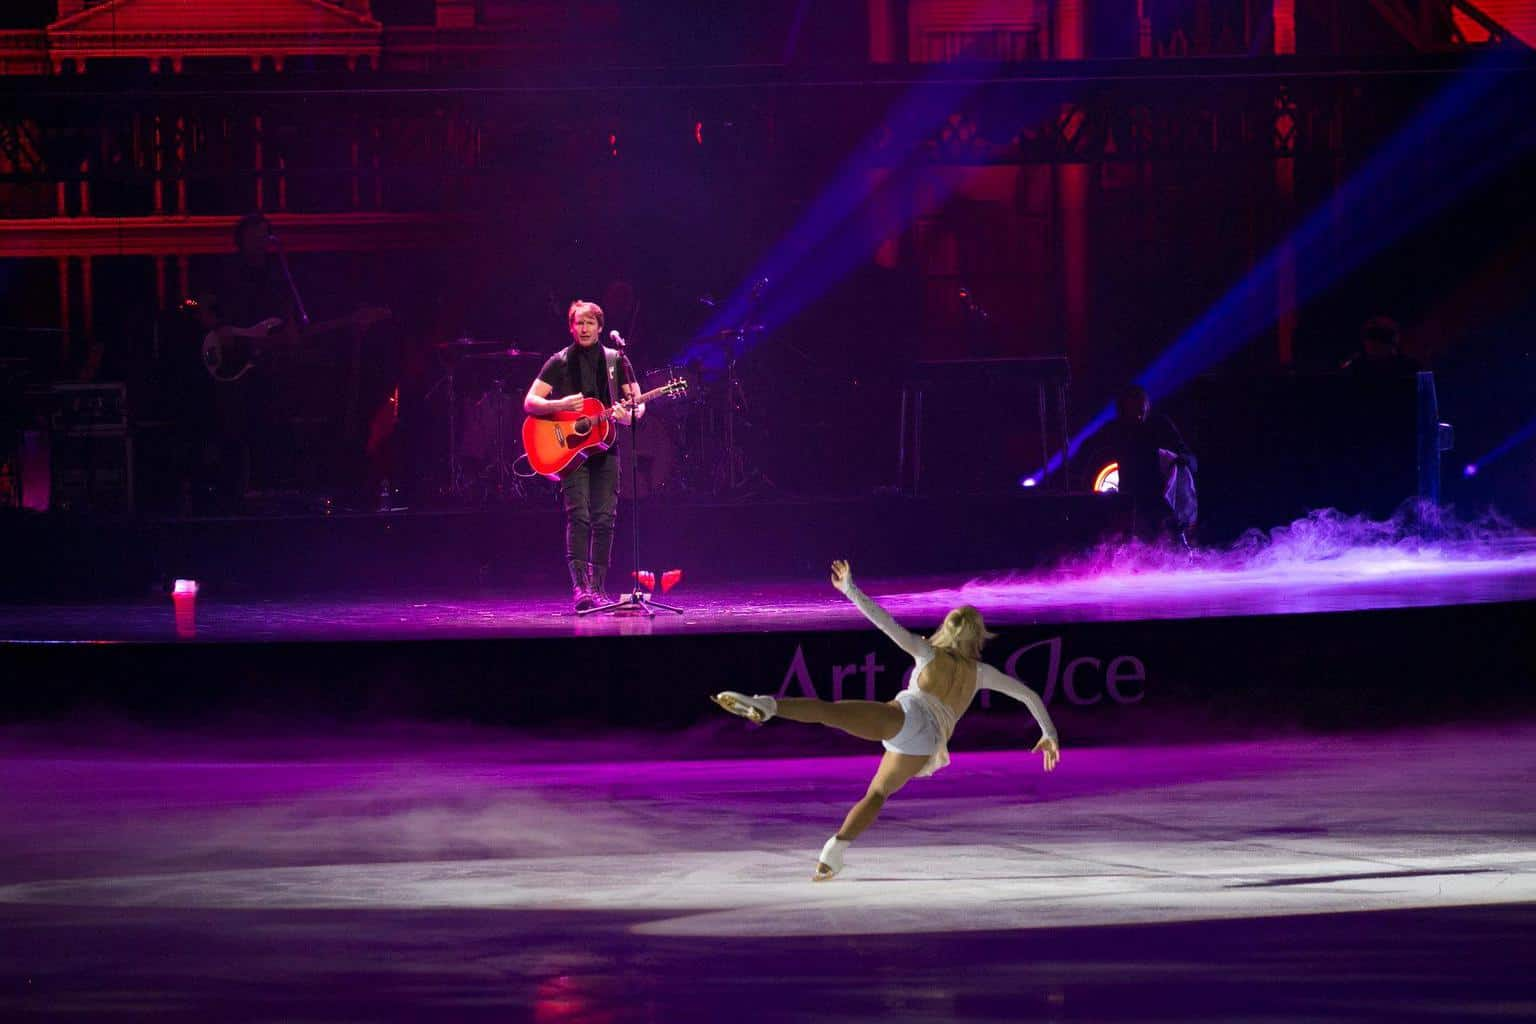 James Blunt Art On Ice Zurich 2019